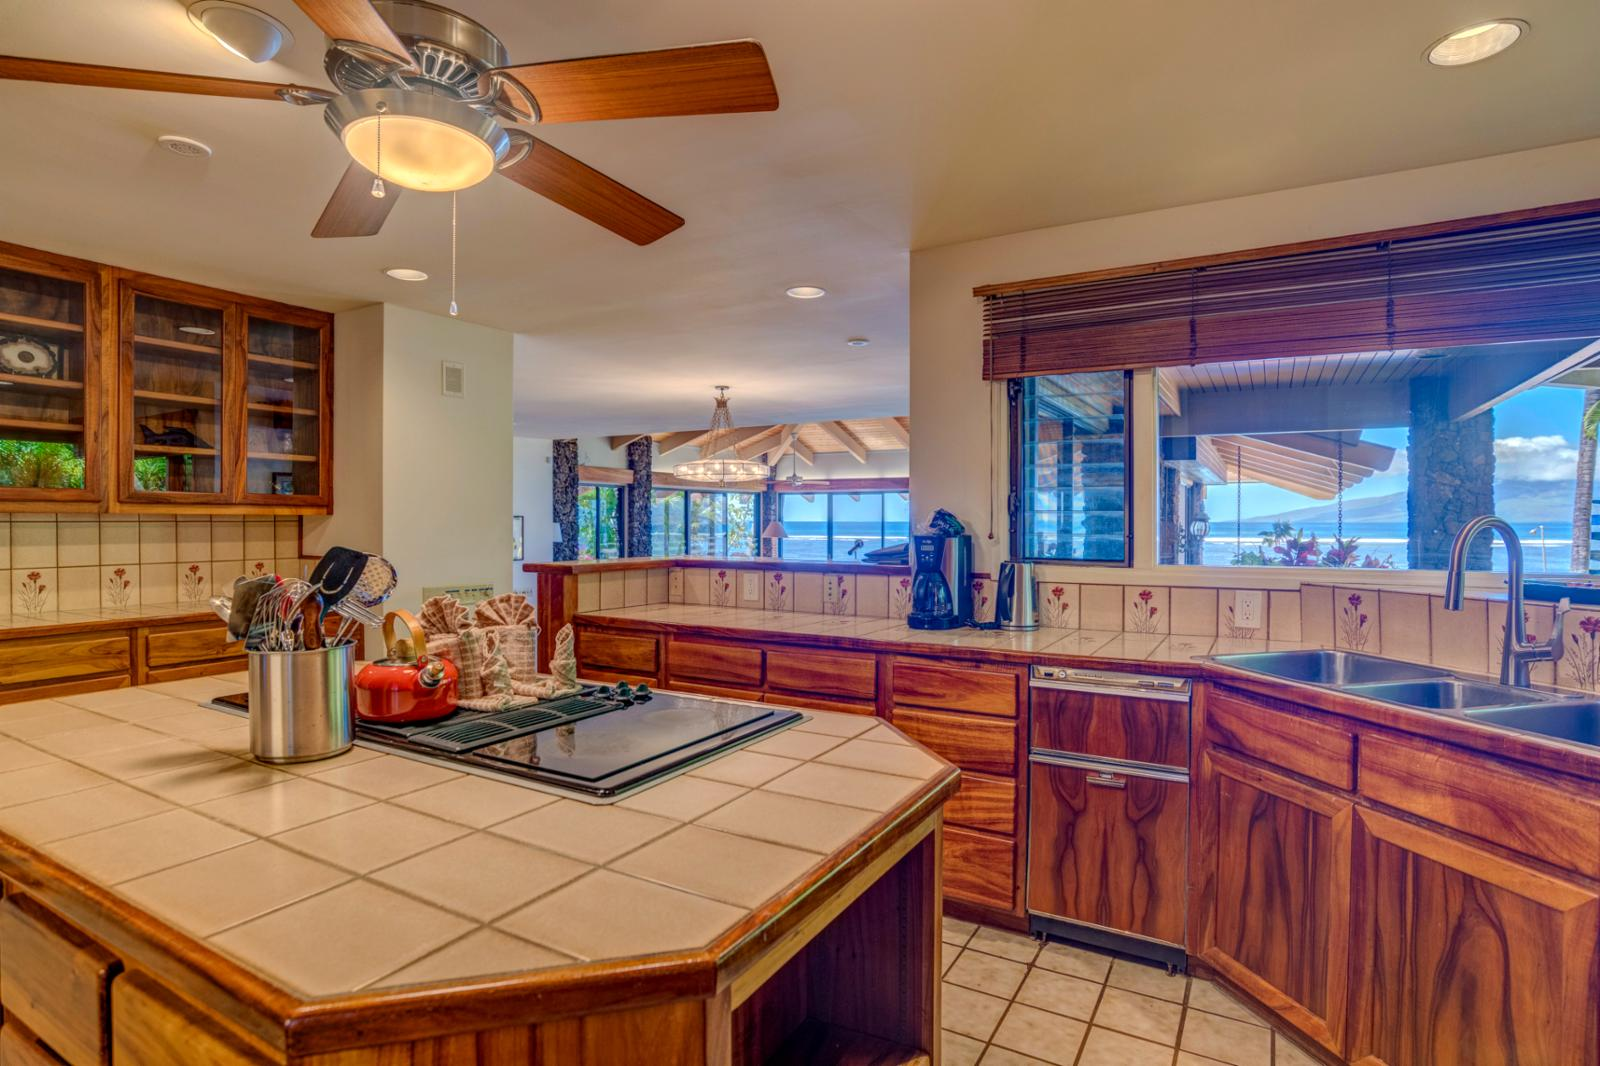 Ocean views from kitchen, perfect for nightly BBQ and meal prep